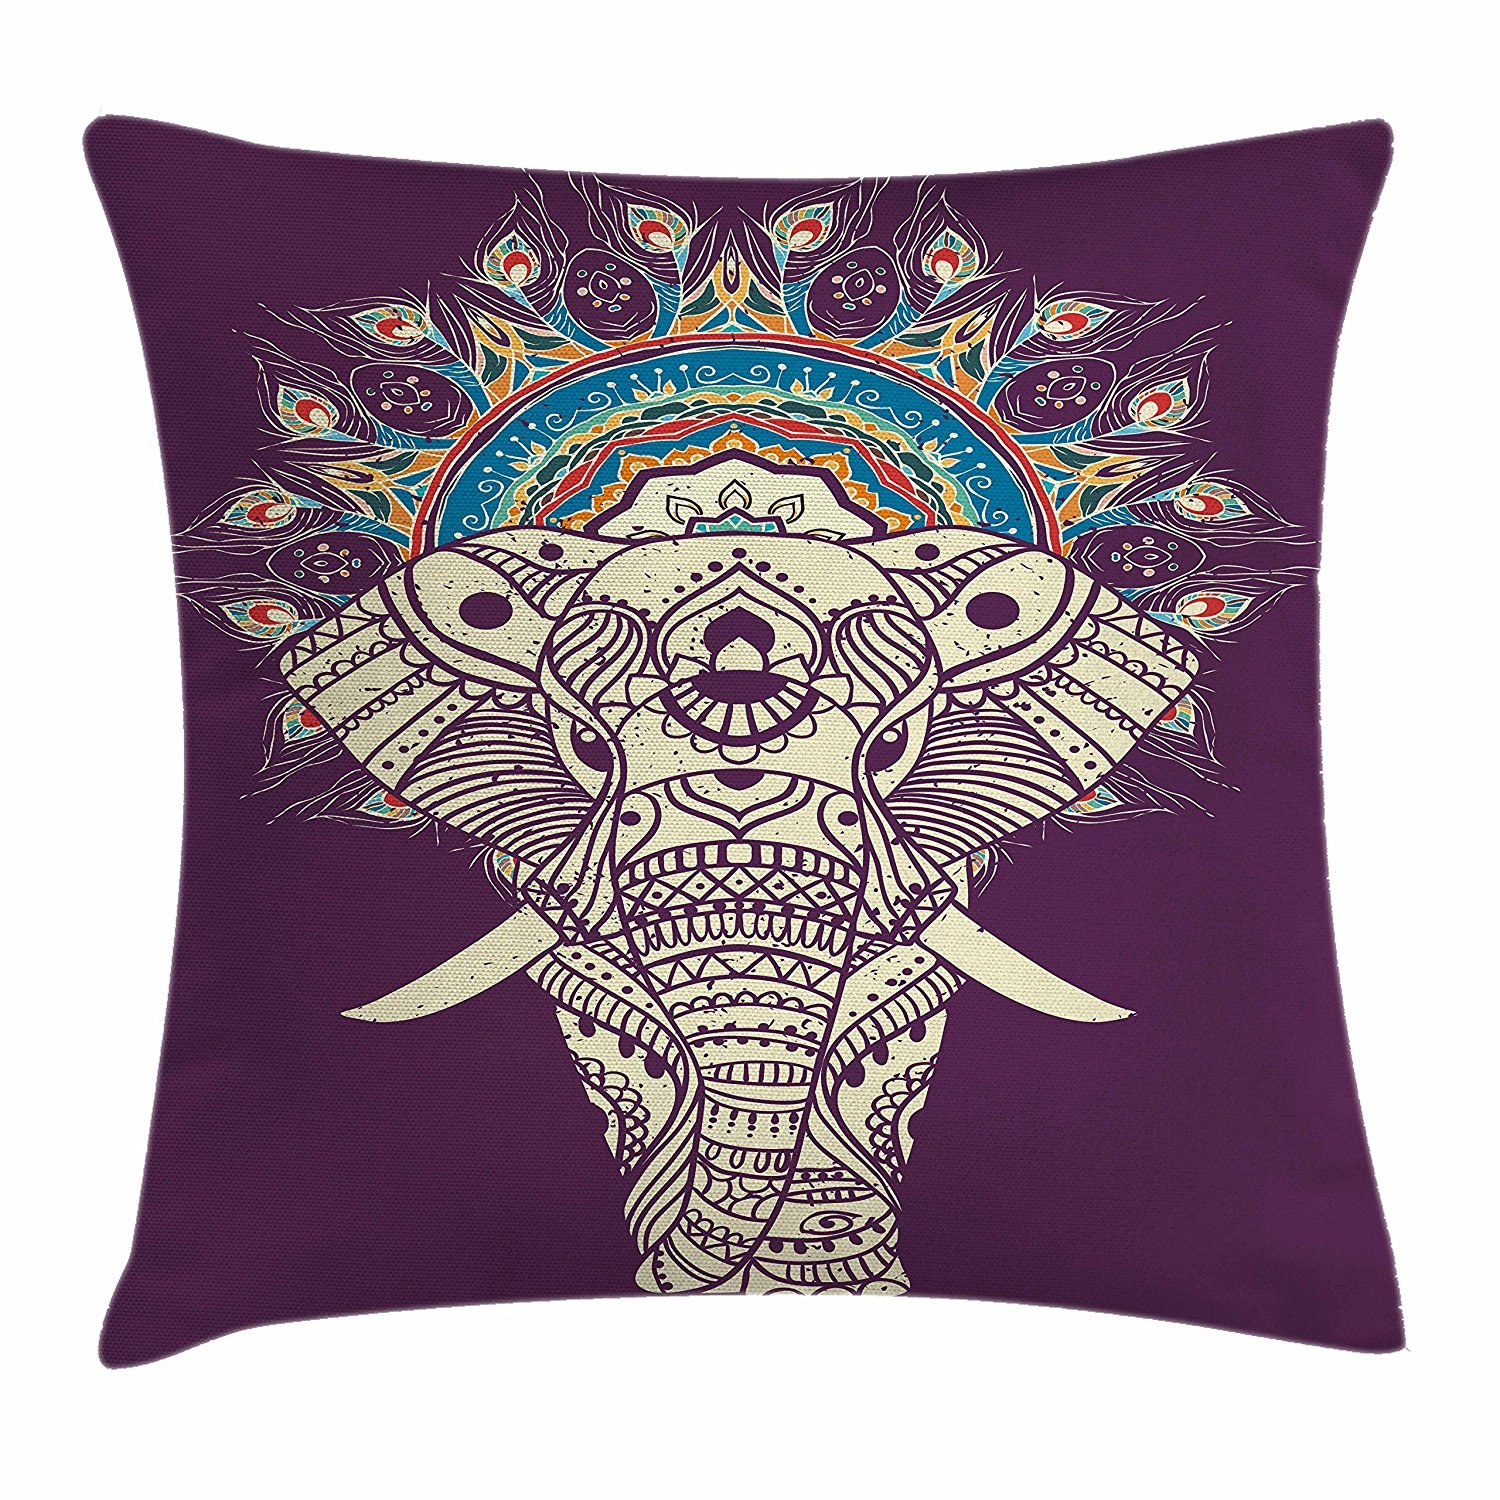 Bohemian Throw Pillow Cushion Cover, Ethnic Traditional Patterns with Swirl Floral Detail and Elephant with Plum Backdrop, Decorative Square Accent Pillow Case, 18 X 18 inches, Multicolor Cool pillow